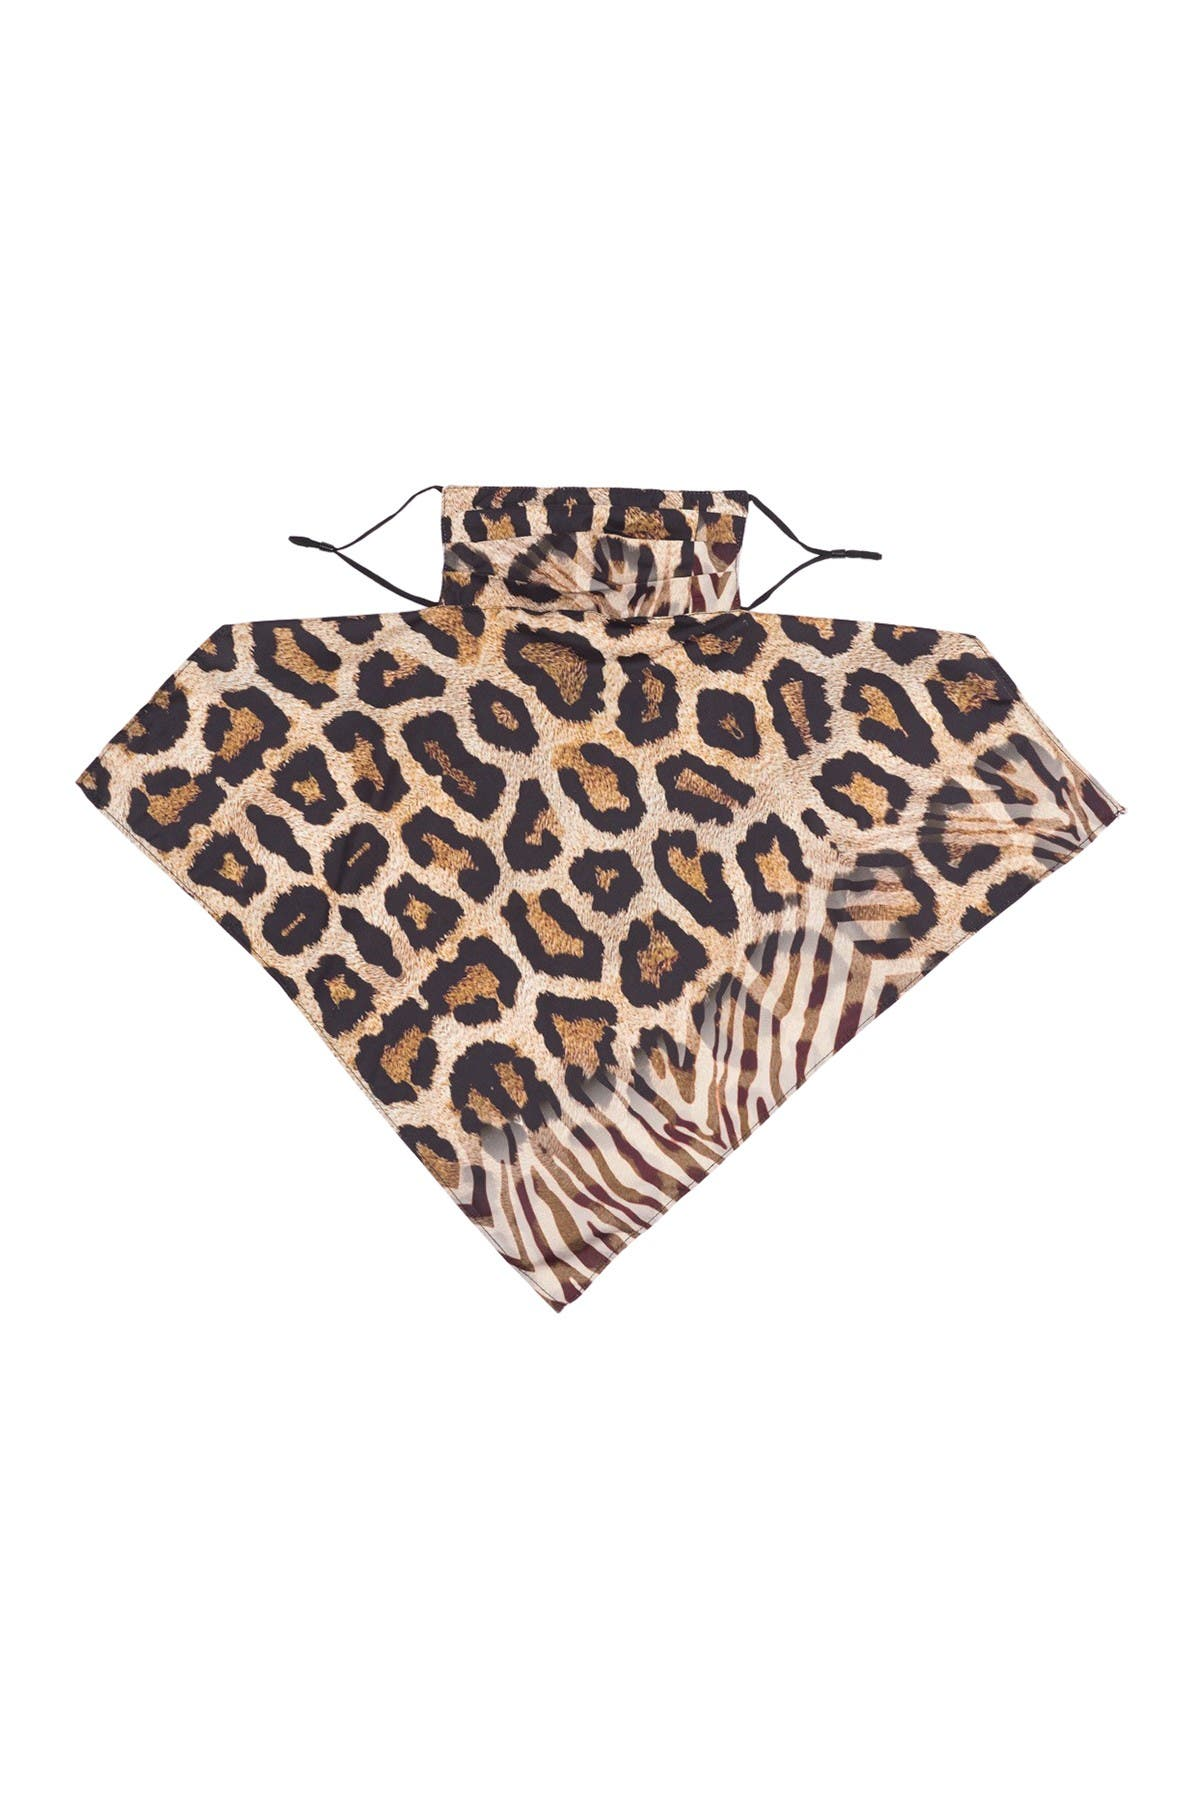 Image of LULLA COLLECTION BY BINDYA Leopard Print Adult Face Mask & Scarf Set